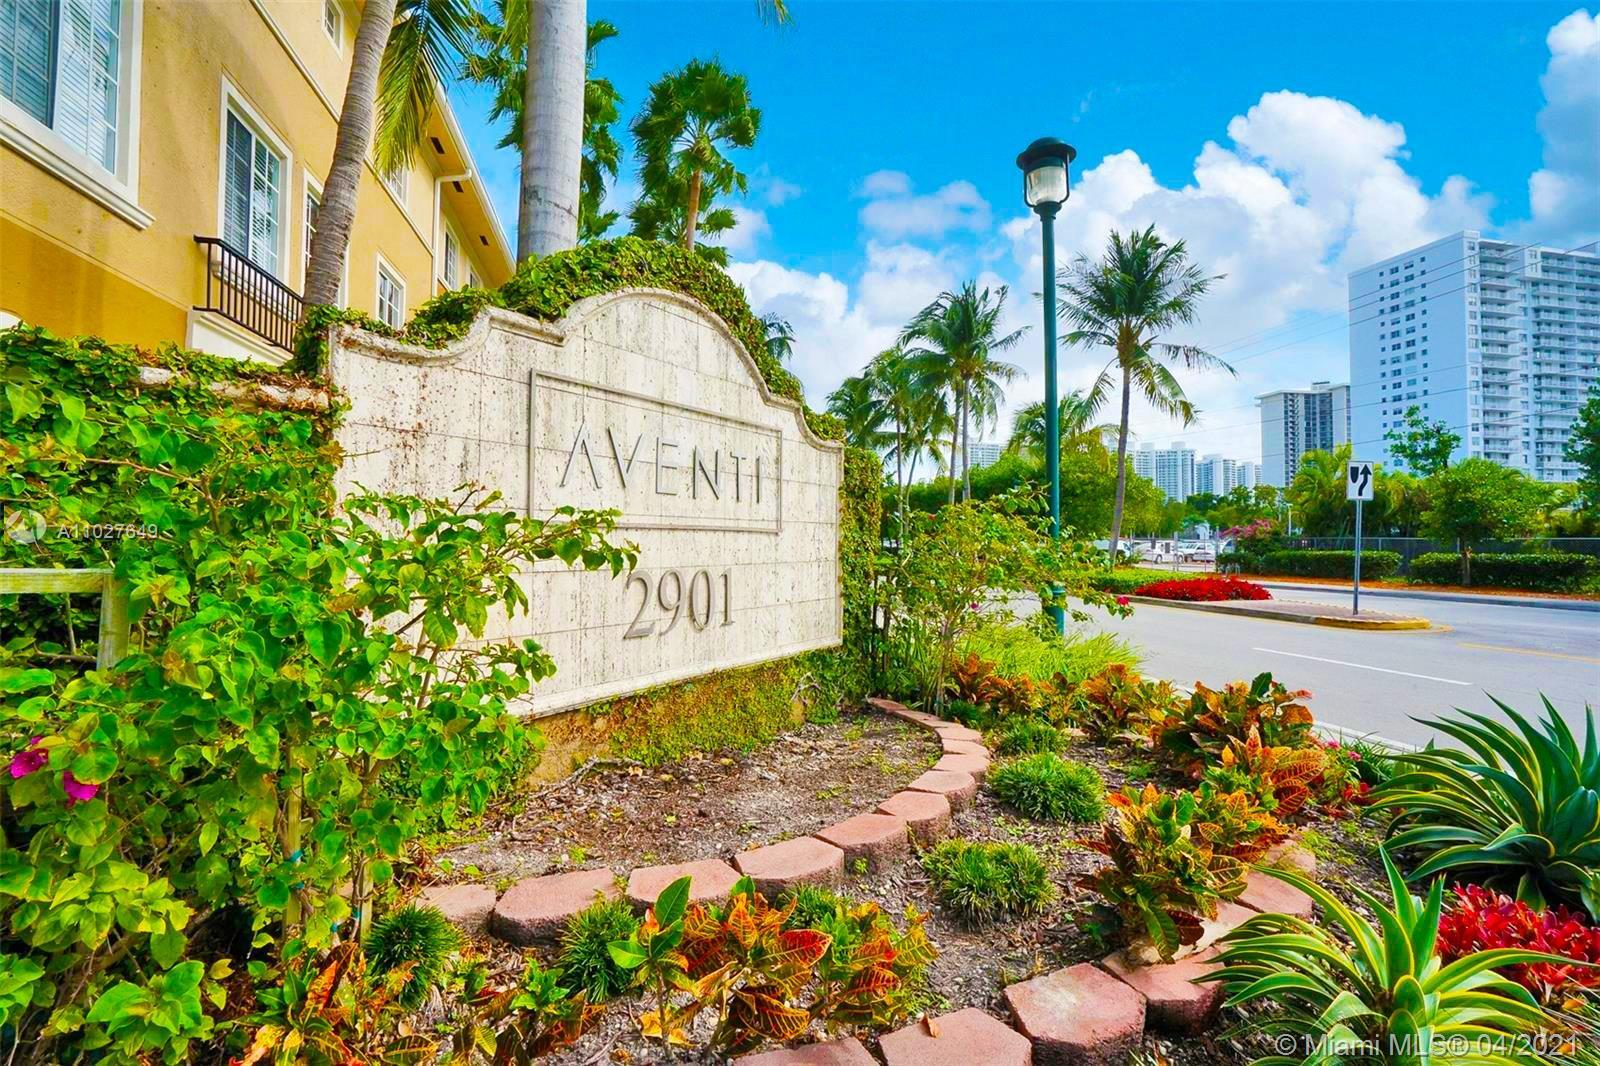 Best priced 3Br/2Ba town house at centrally located Aventi at Aventura. This is a private community